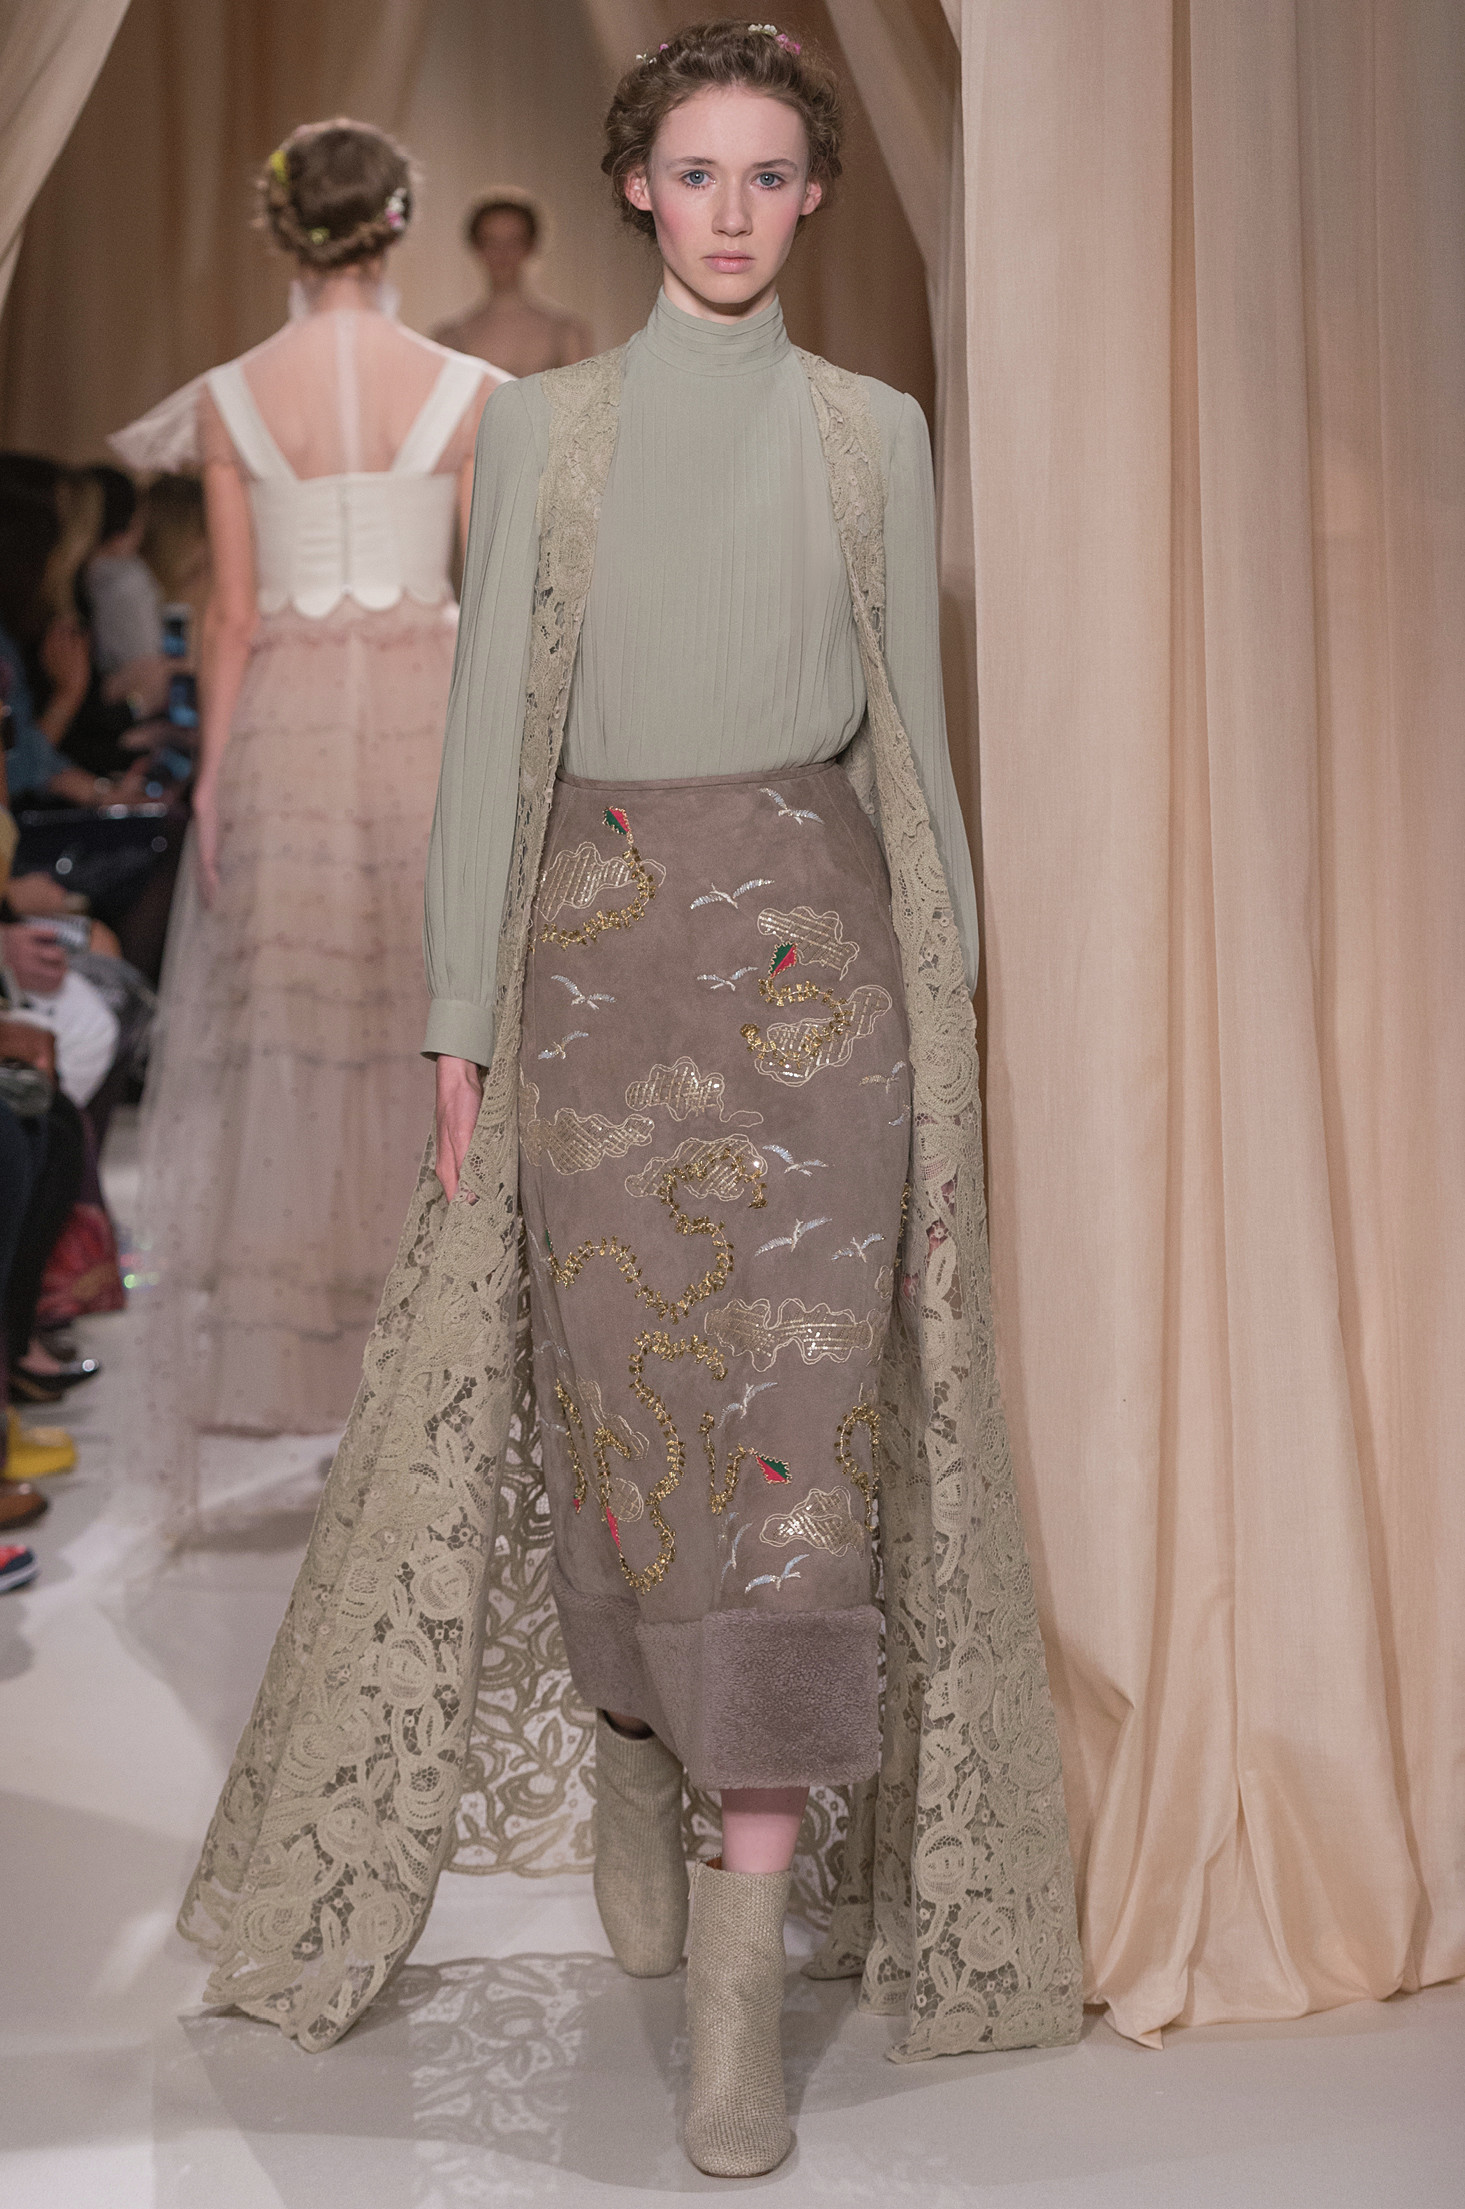 Pomegranate motif from Valentino's S/S 2015 couture collection. Image: Yannis Vlamos/style.com